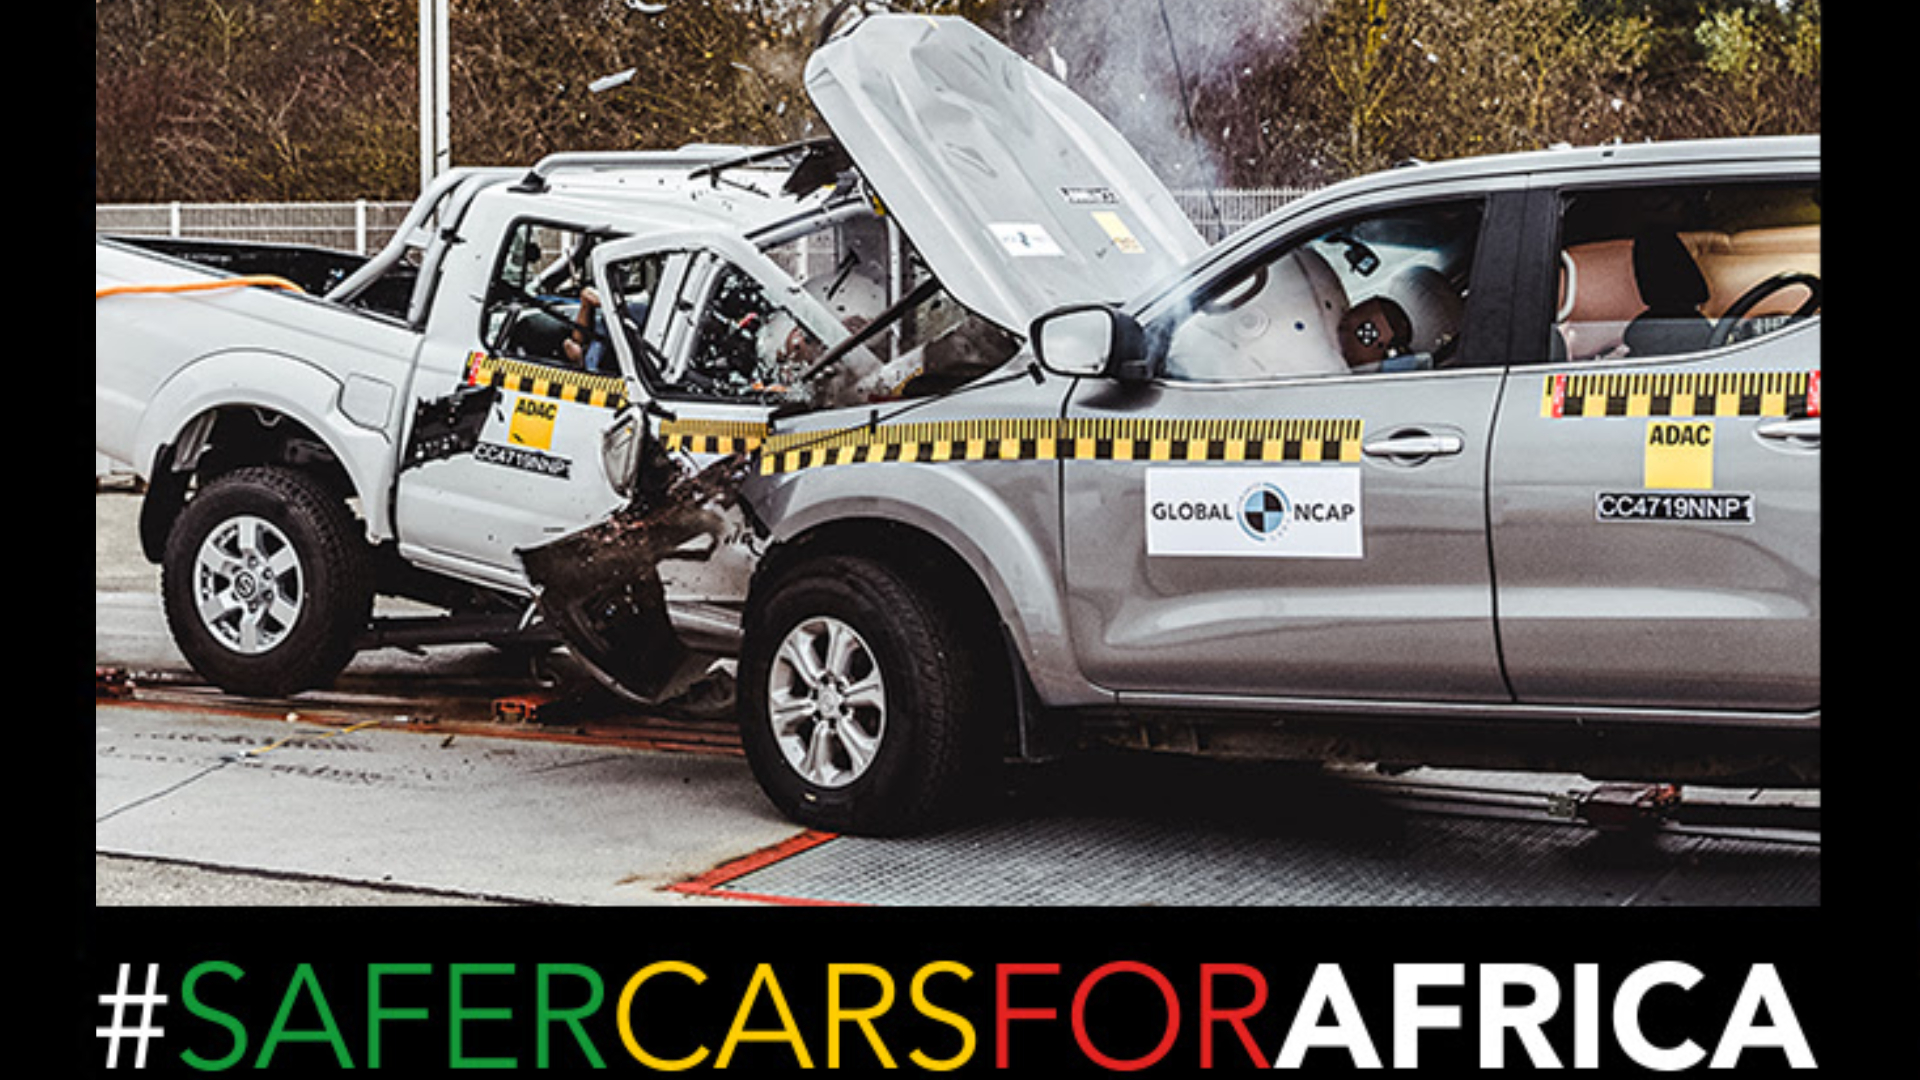 NCAP safer cars for Africa